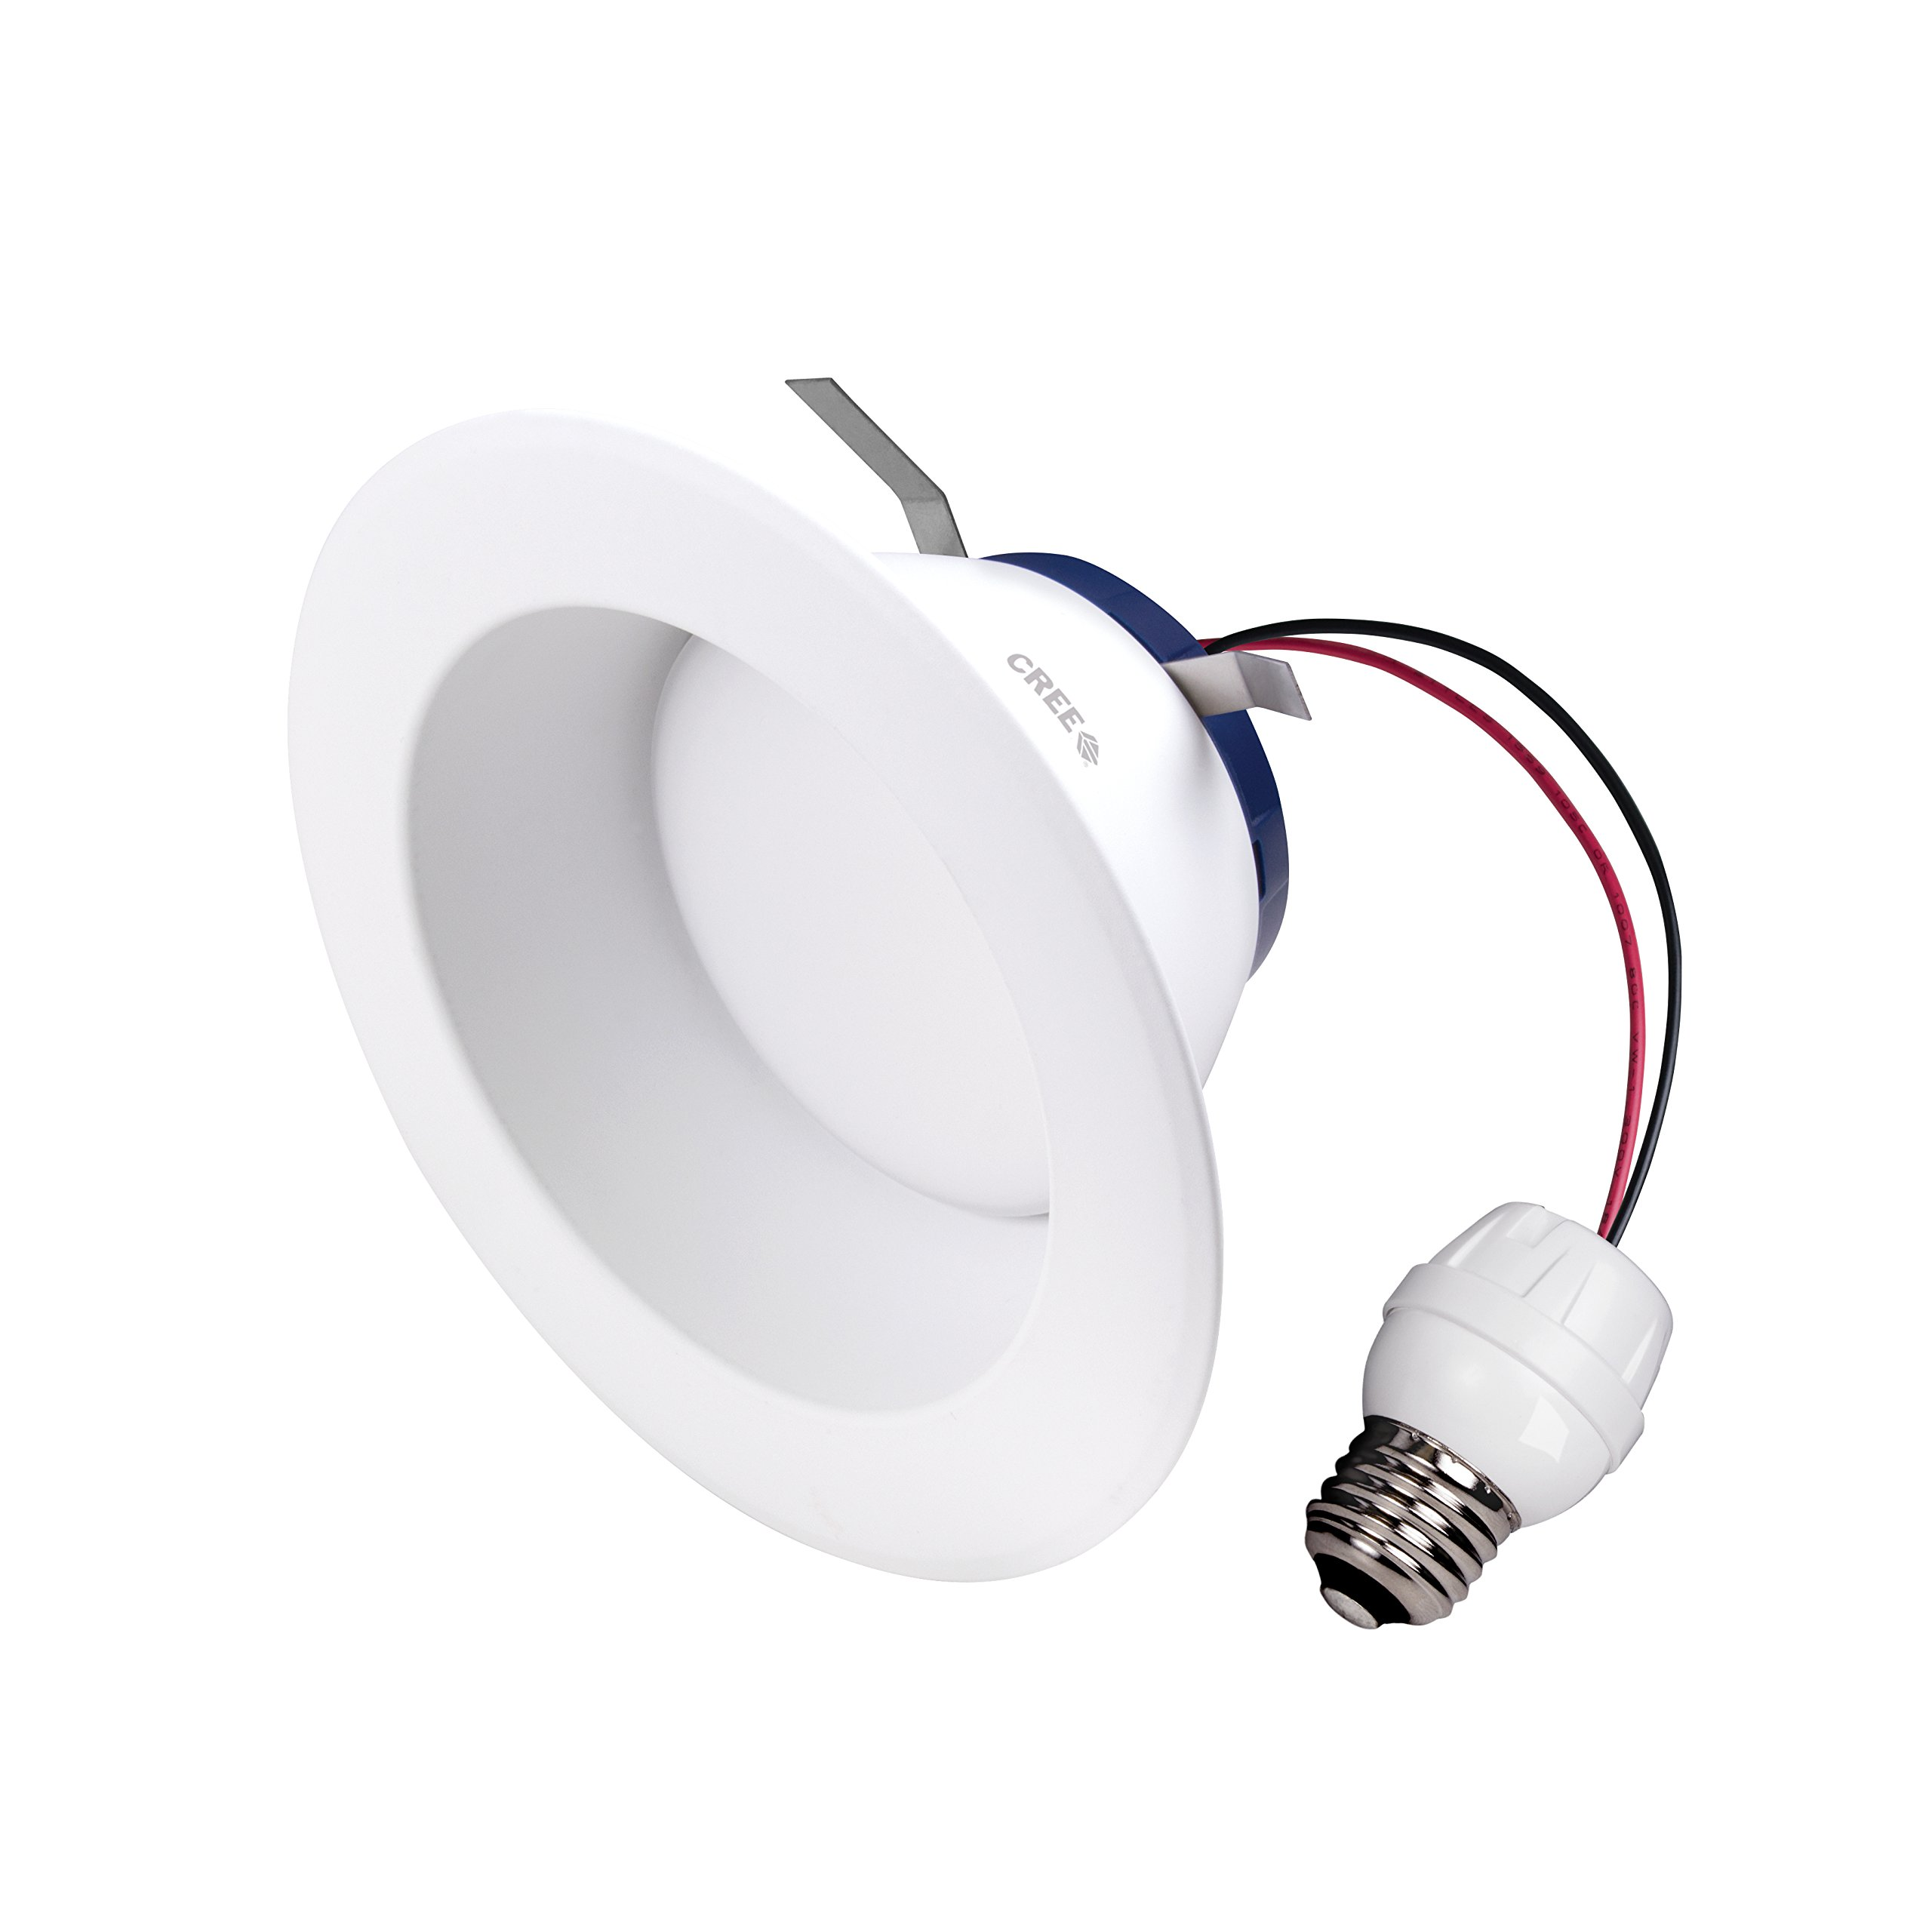 Cree TW Series 6 in. 65W Equivalent Soft White (2700K) LED Retrofit Recessed Downlight (4-pack)